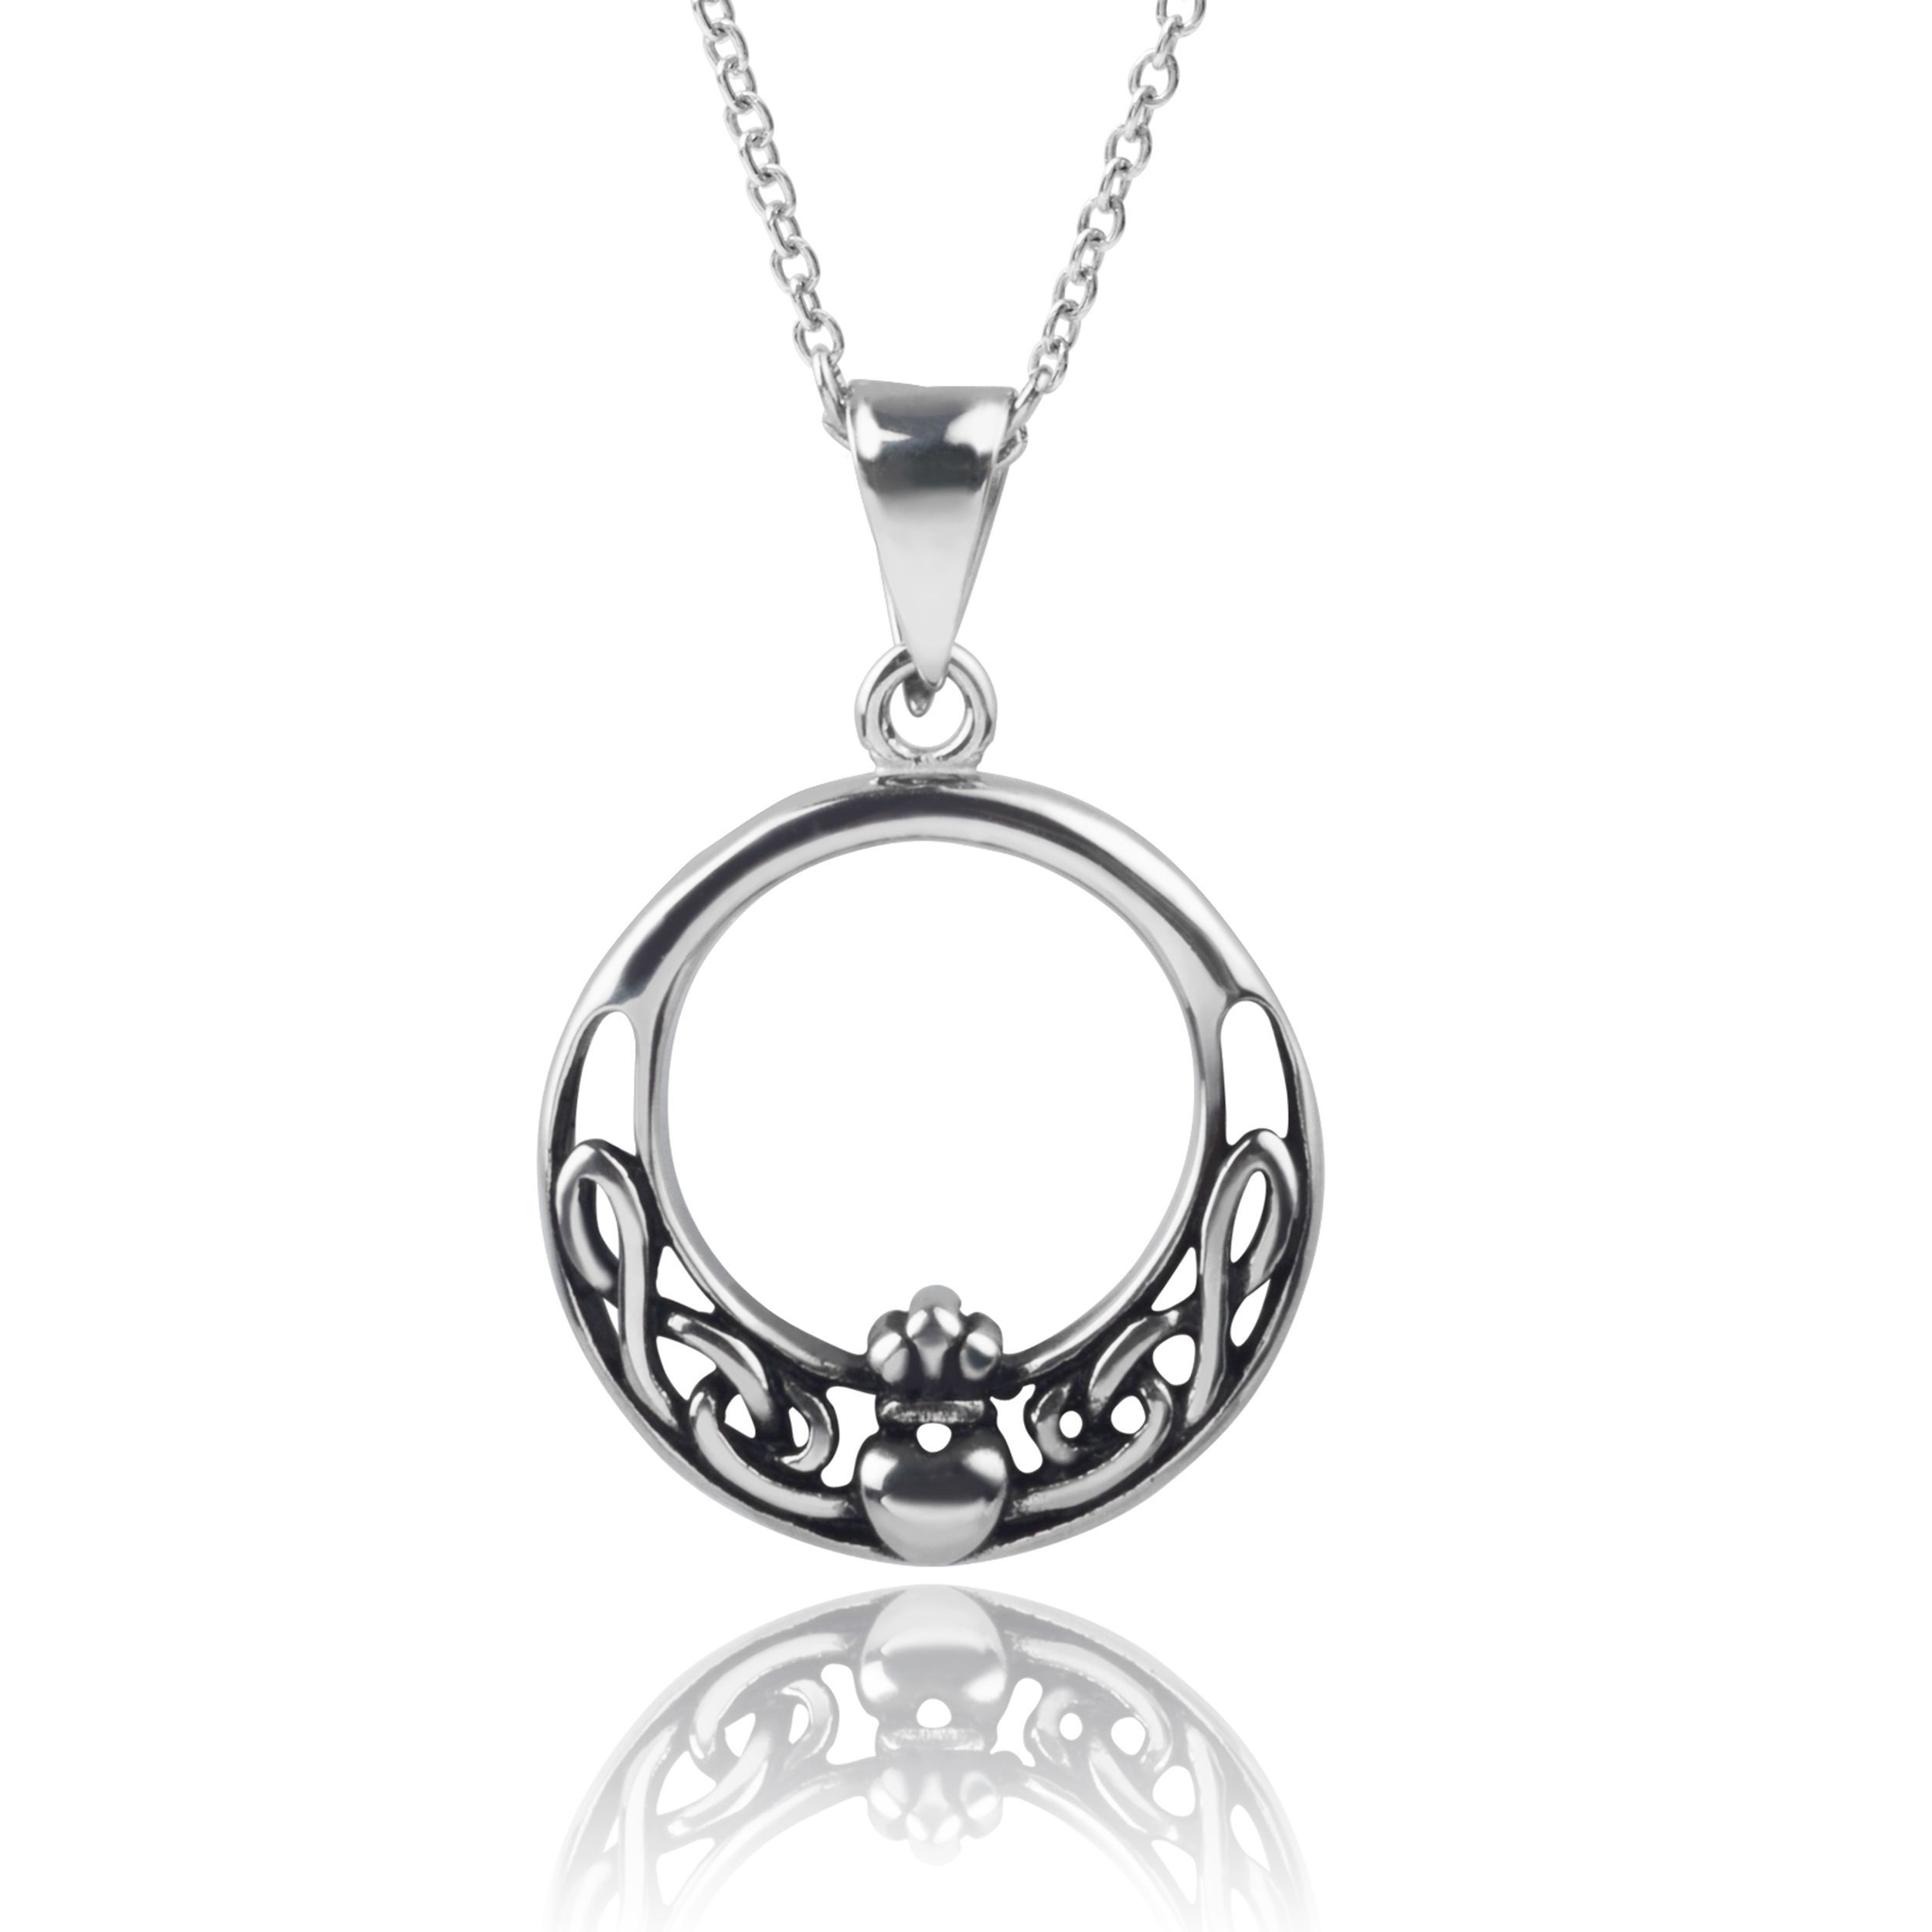 steel stainless irish celtic necklace pendant blessing butterfly